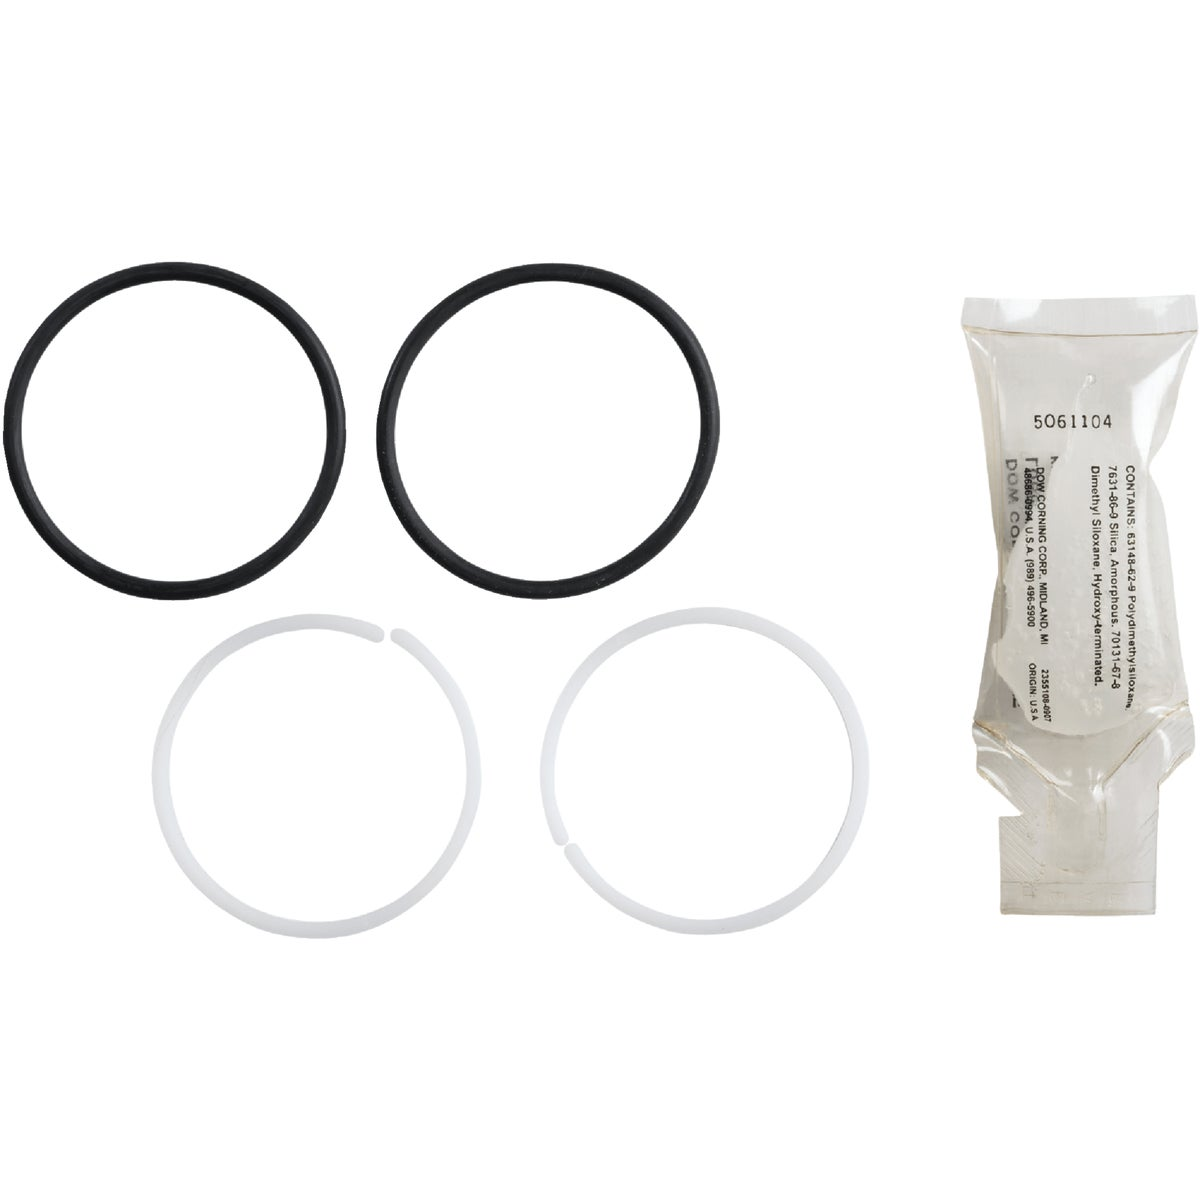 O-RING FAUCET REPAIR KIT